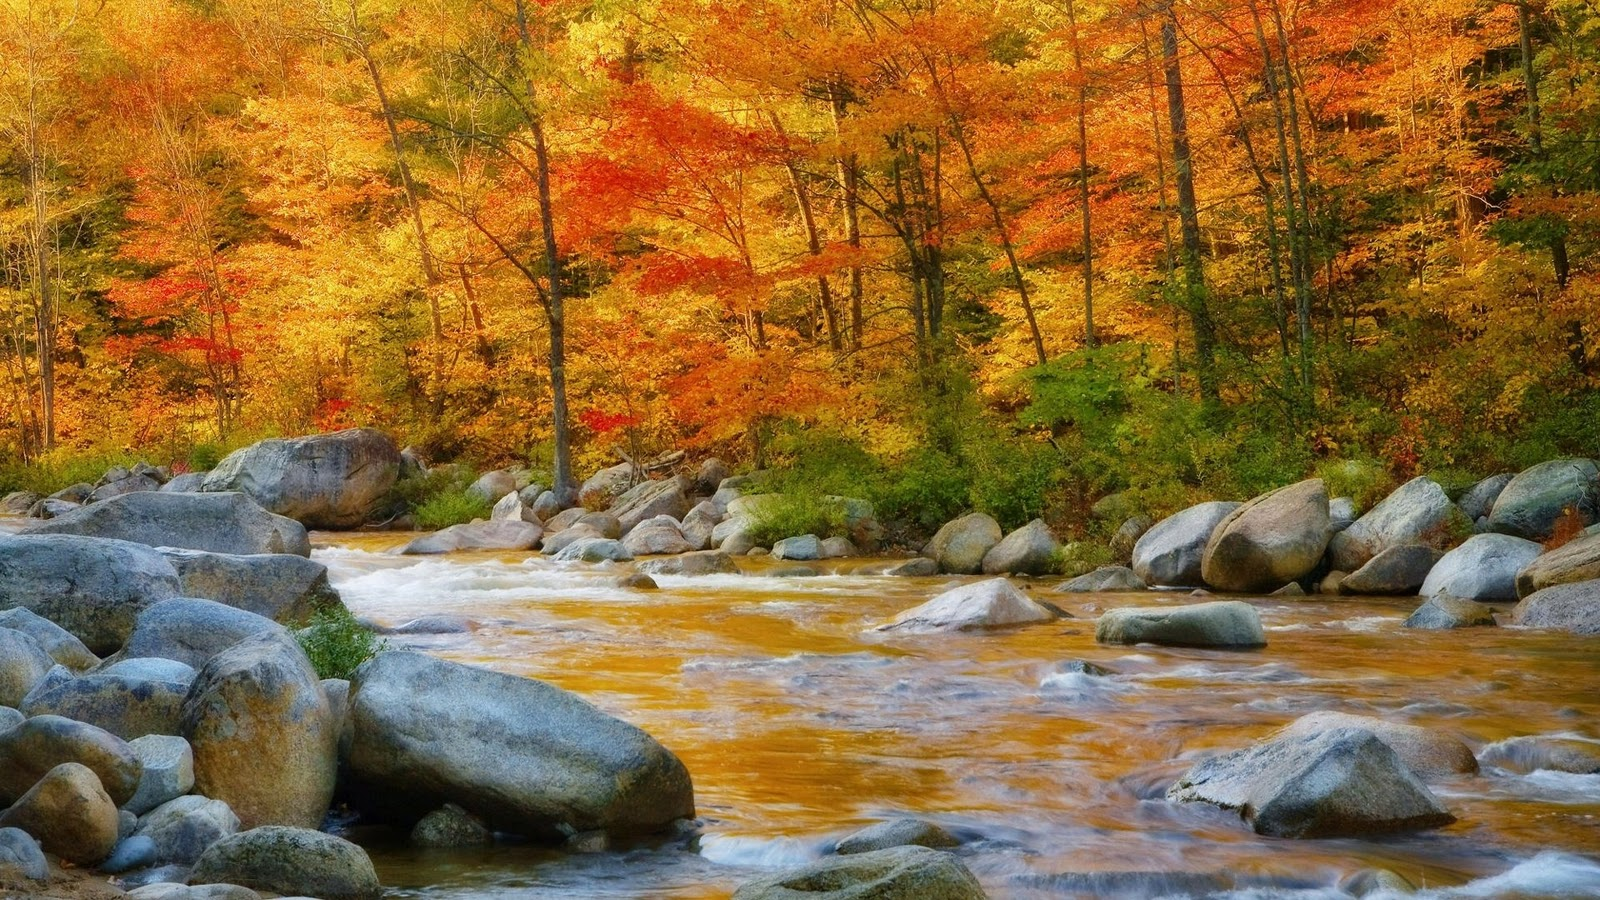 River Nature Wallpaper